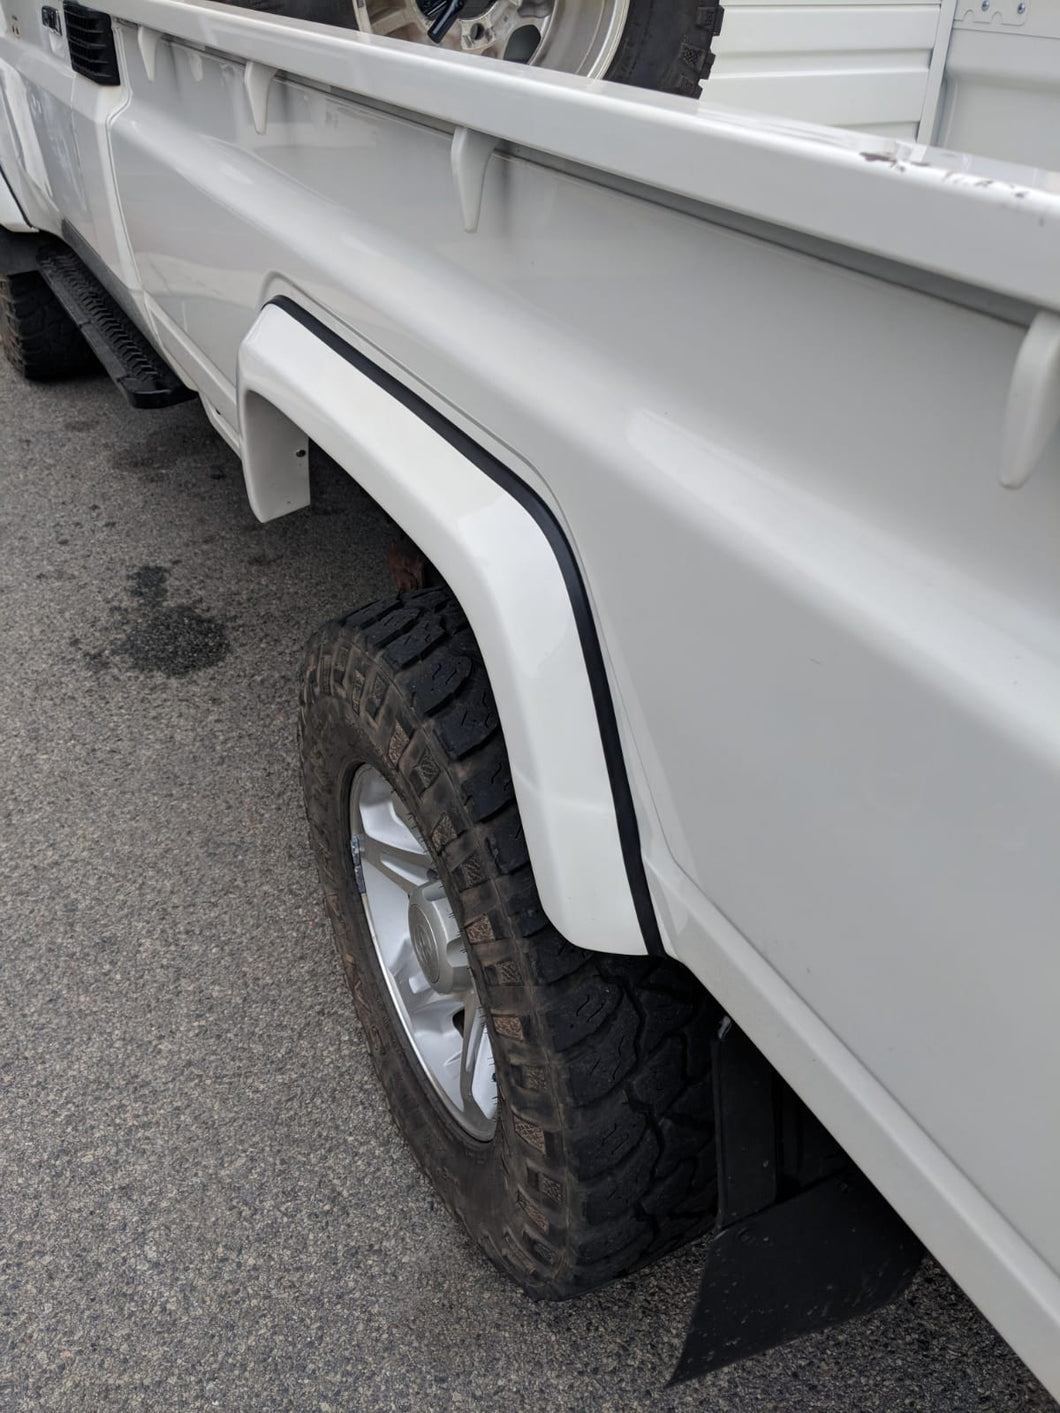 Rear Flares To Suit All 79 Series Land Cruisers With a Well body